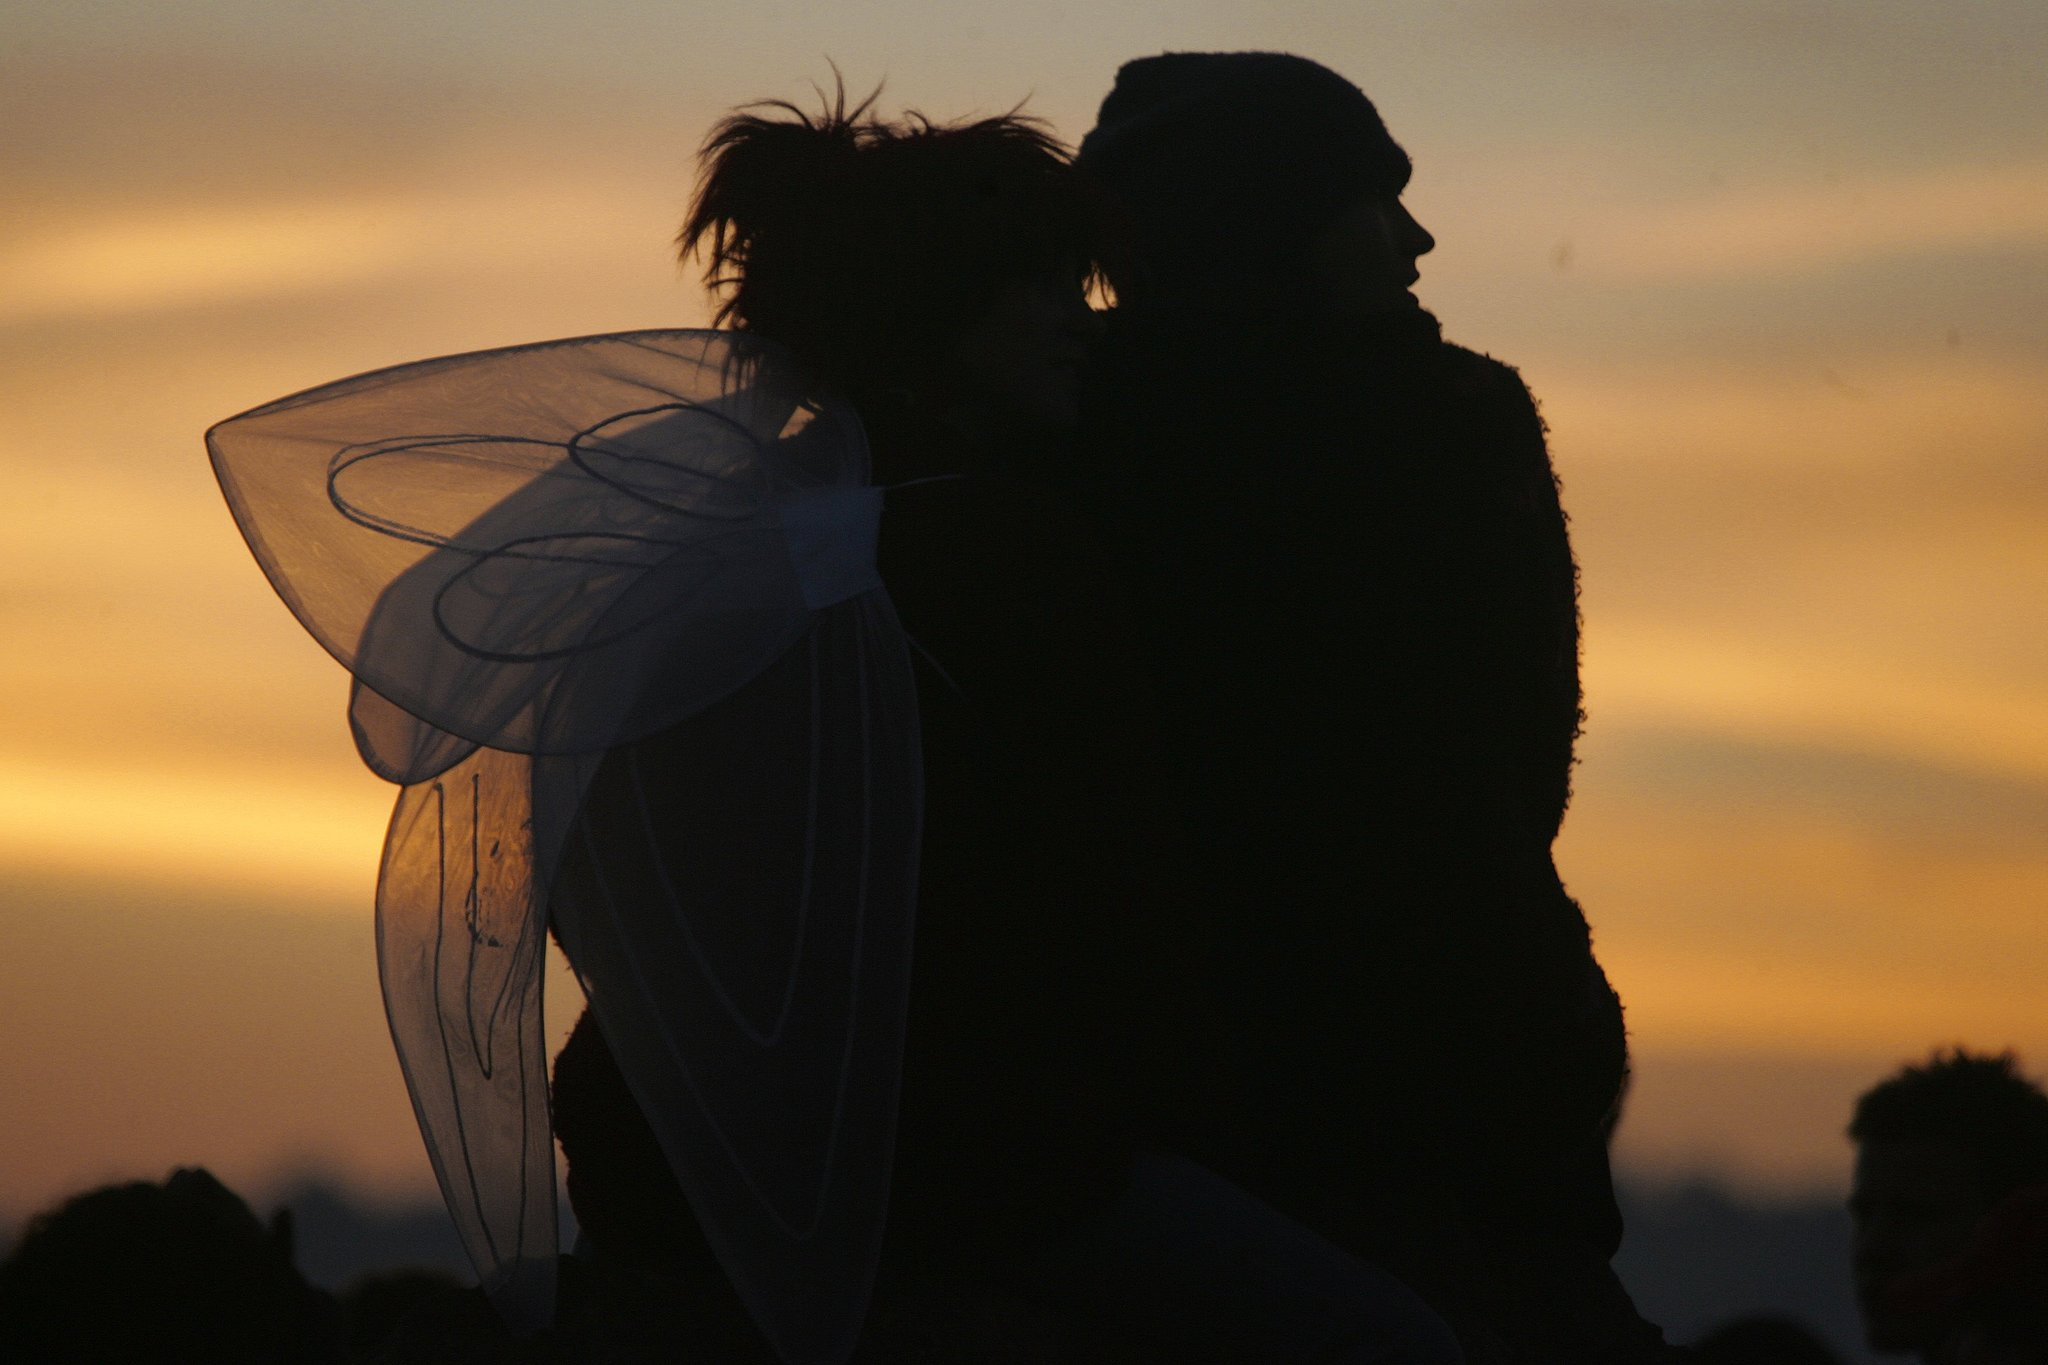 This couple got close to watch the sunrise at the Glastonbury Festival in England.